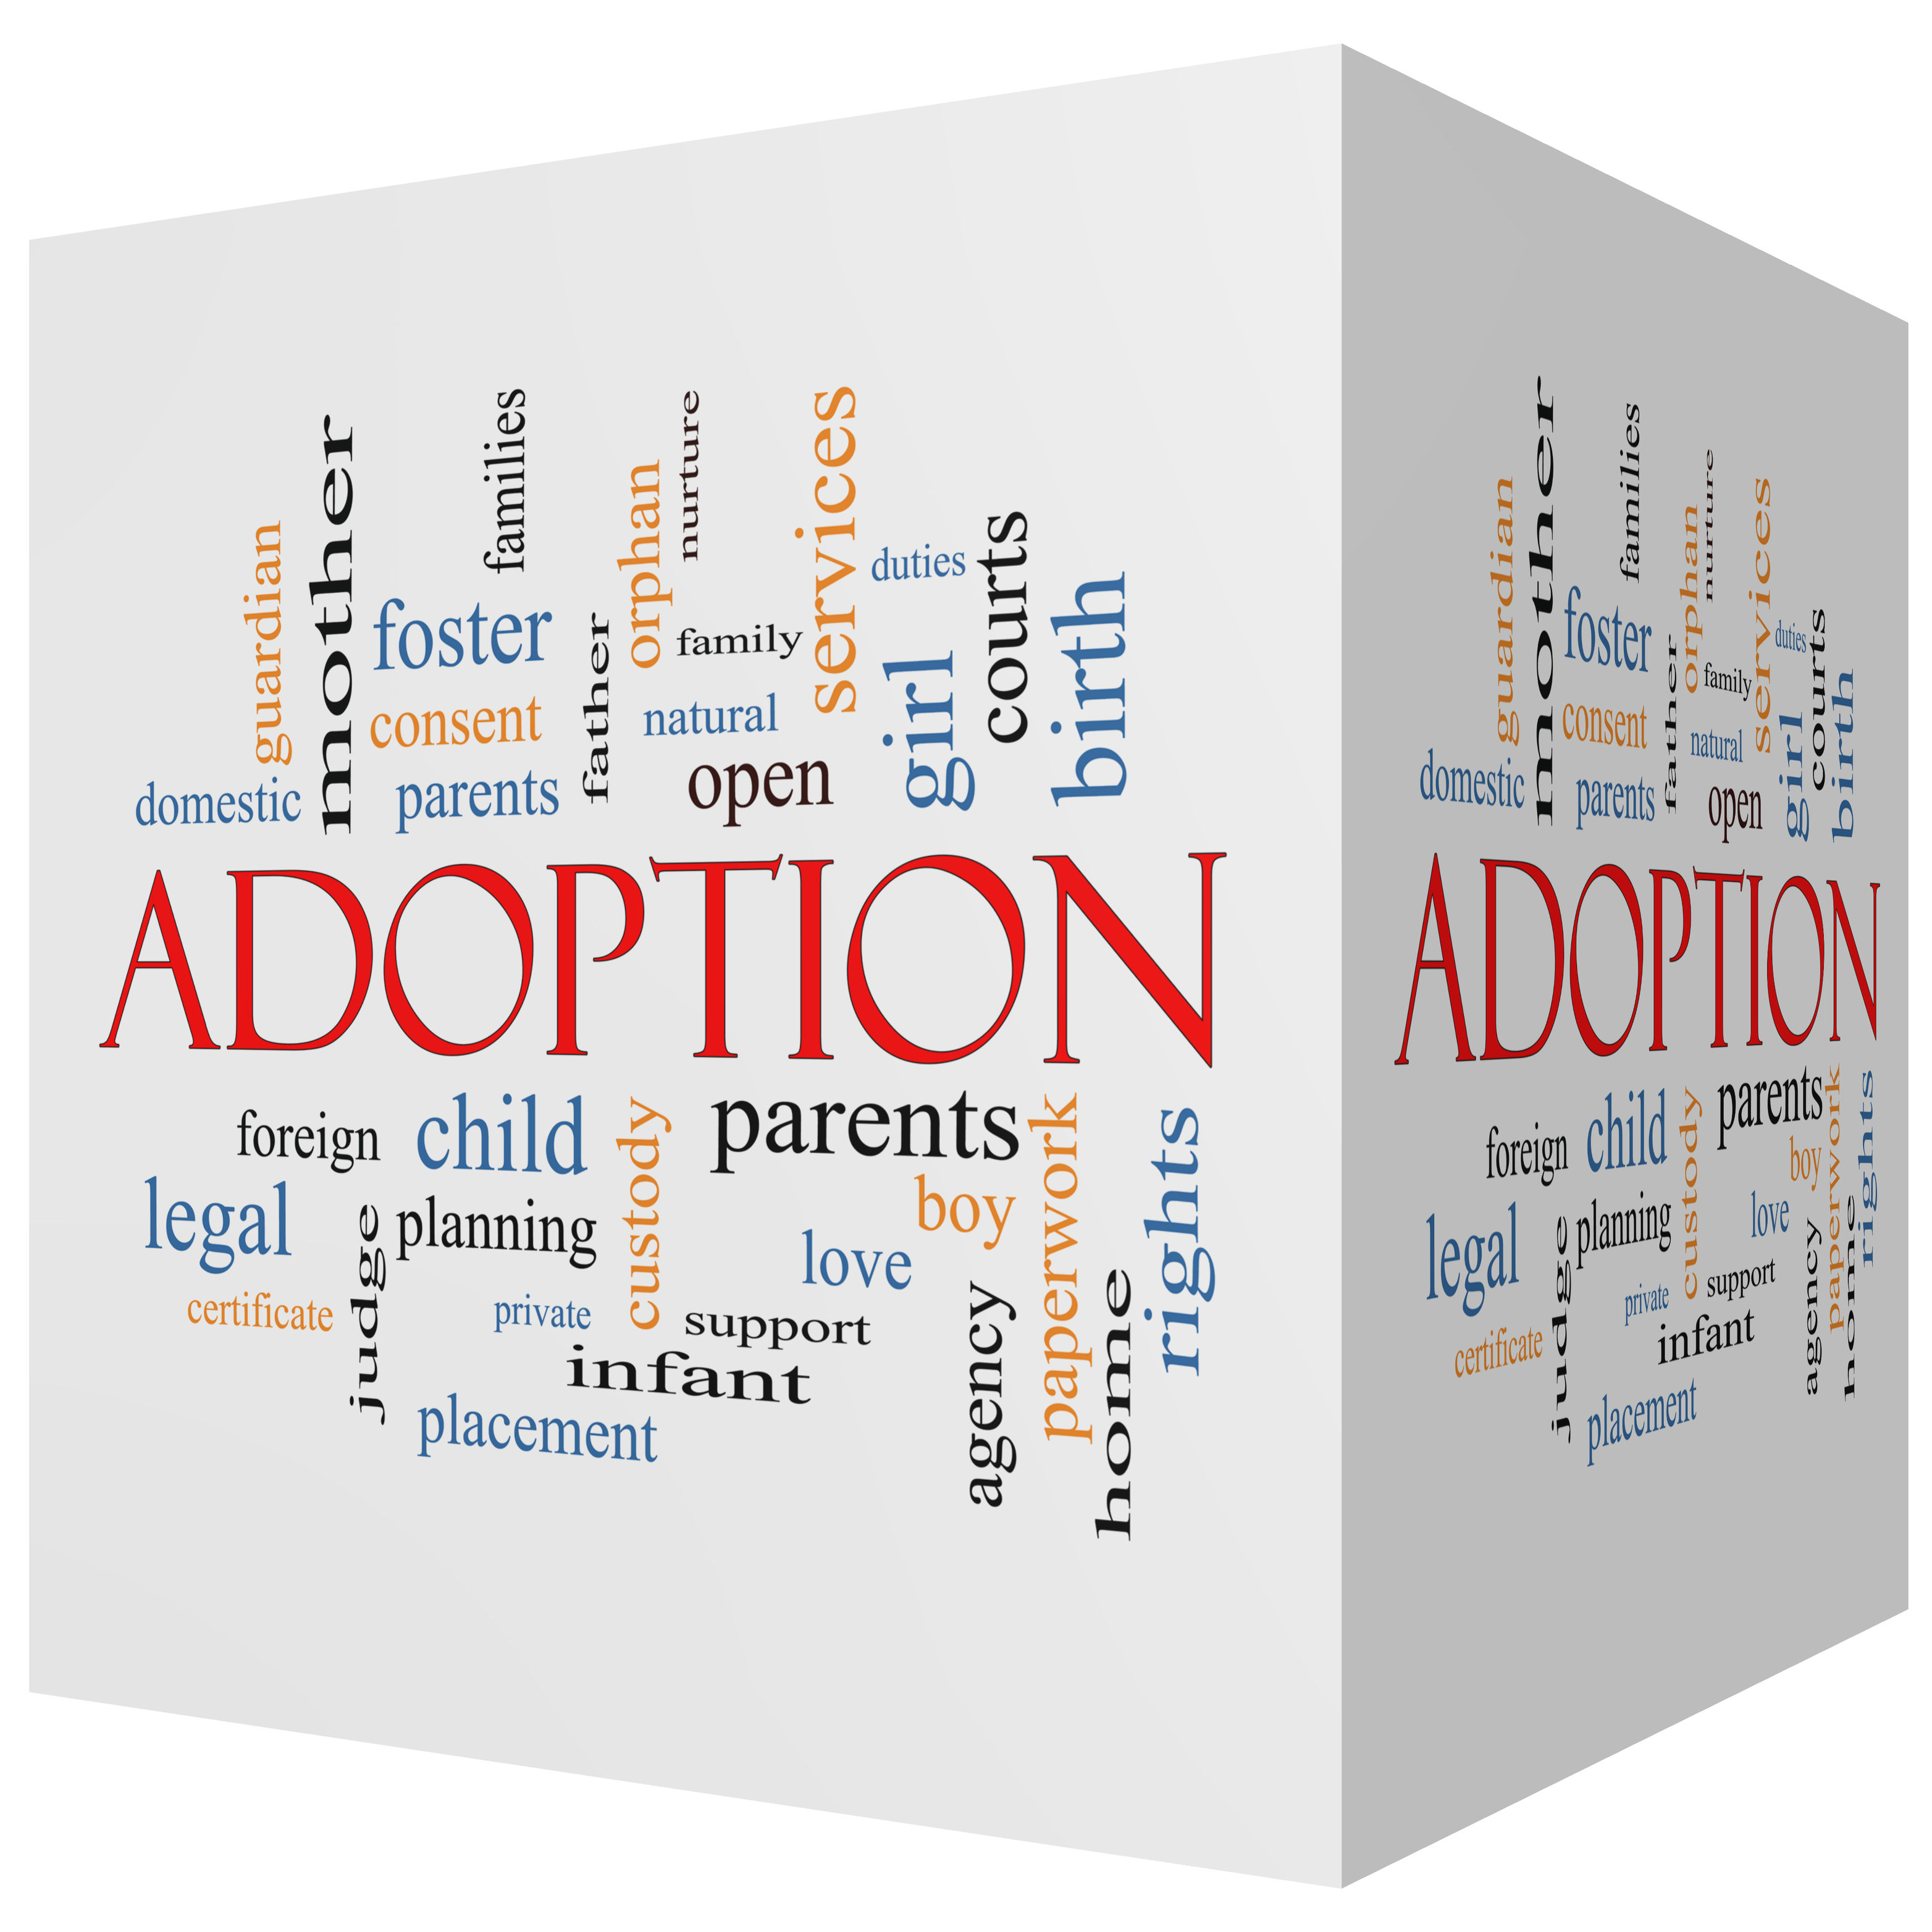 4 Reasons to Choose Independent Adoption Over Agency Adoption